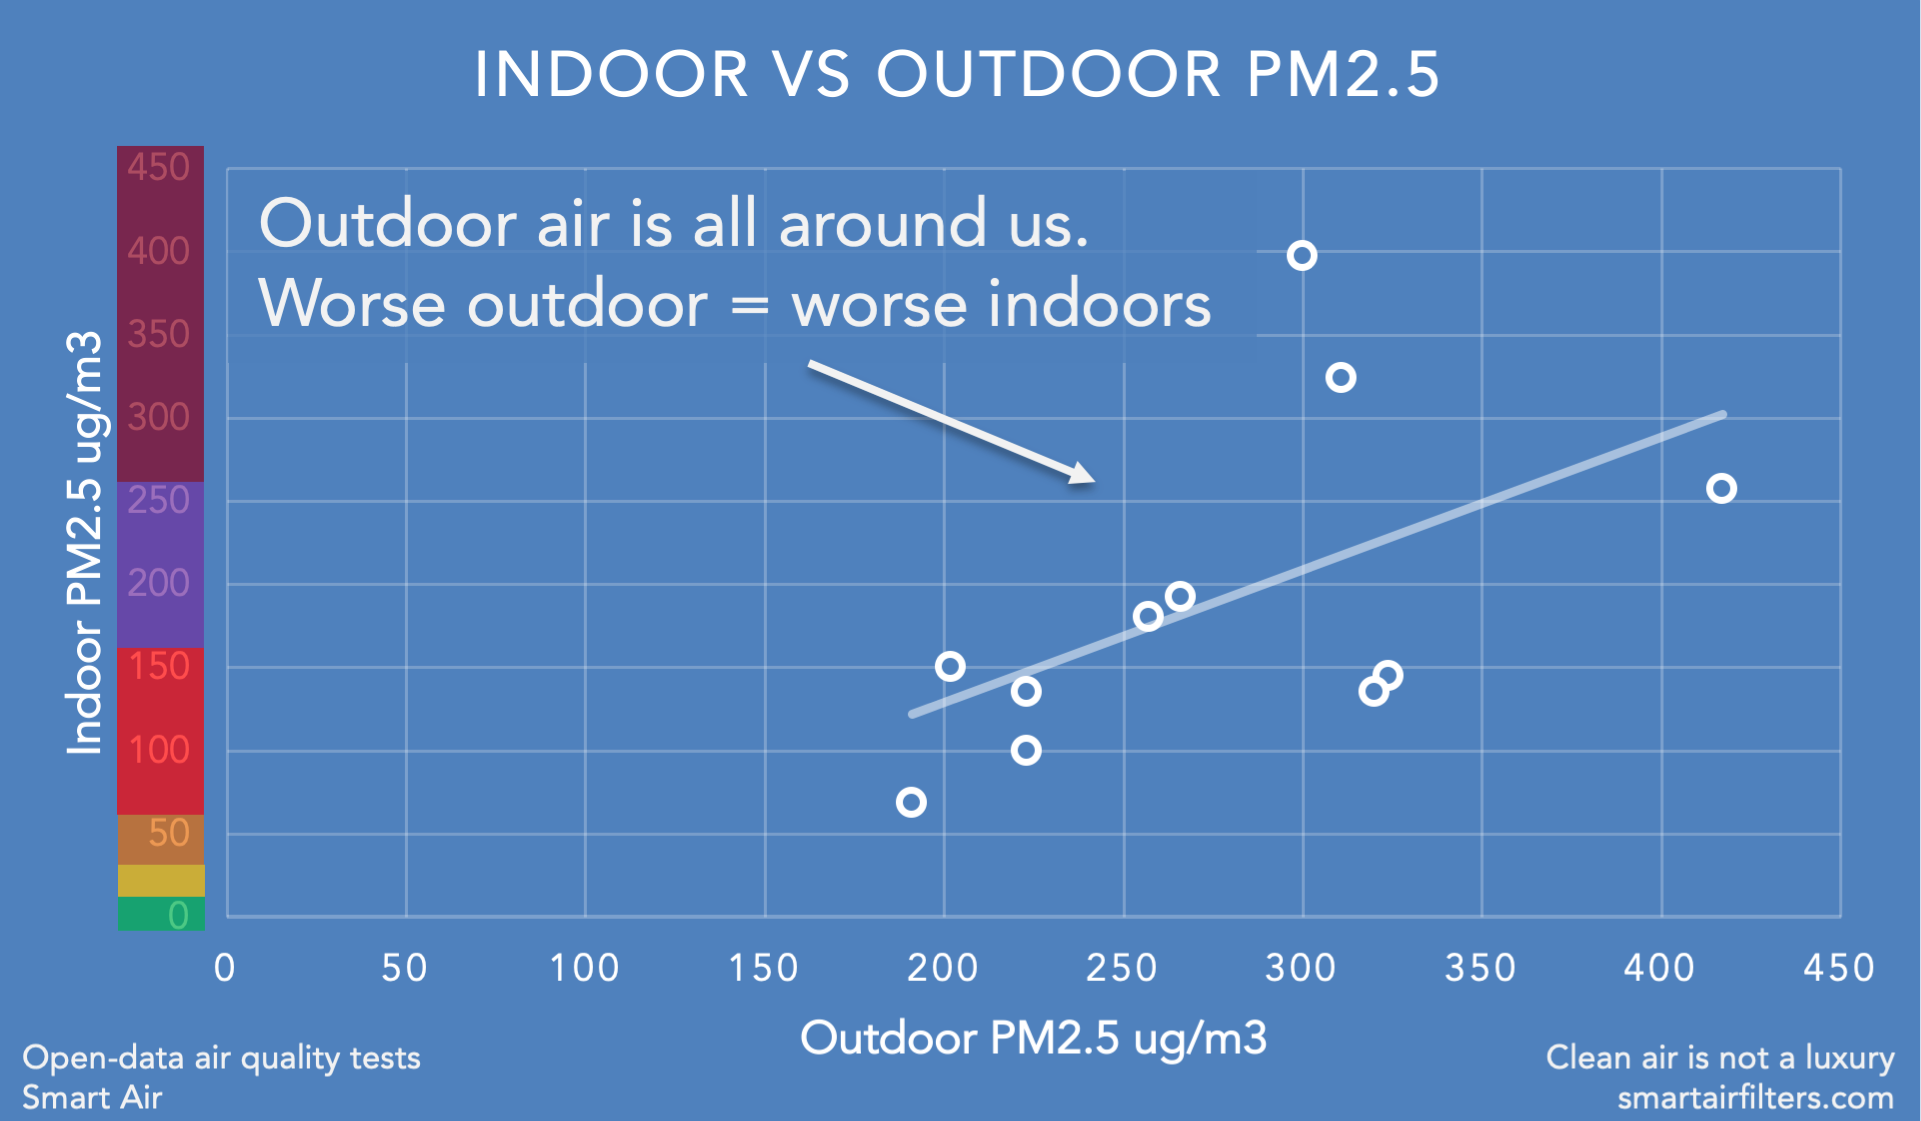 When outdoor air is worse, indoor air tends to become worse